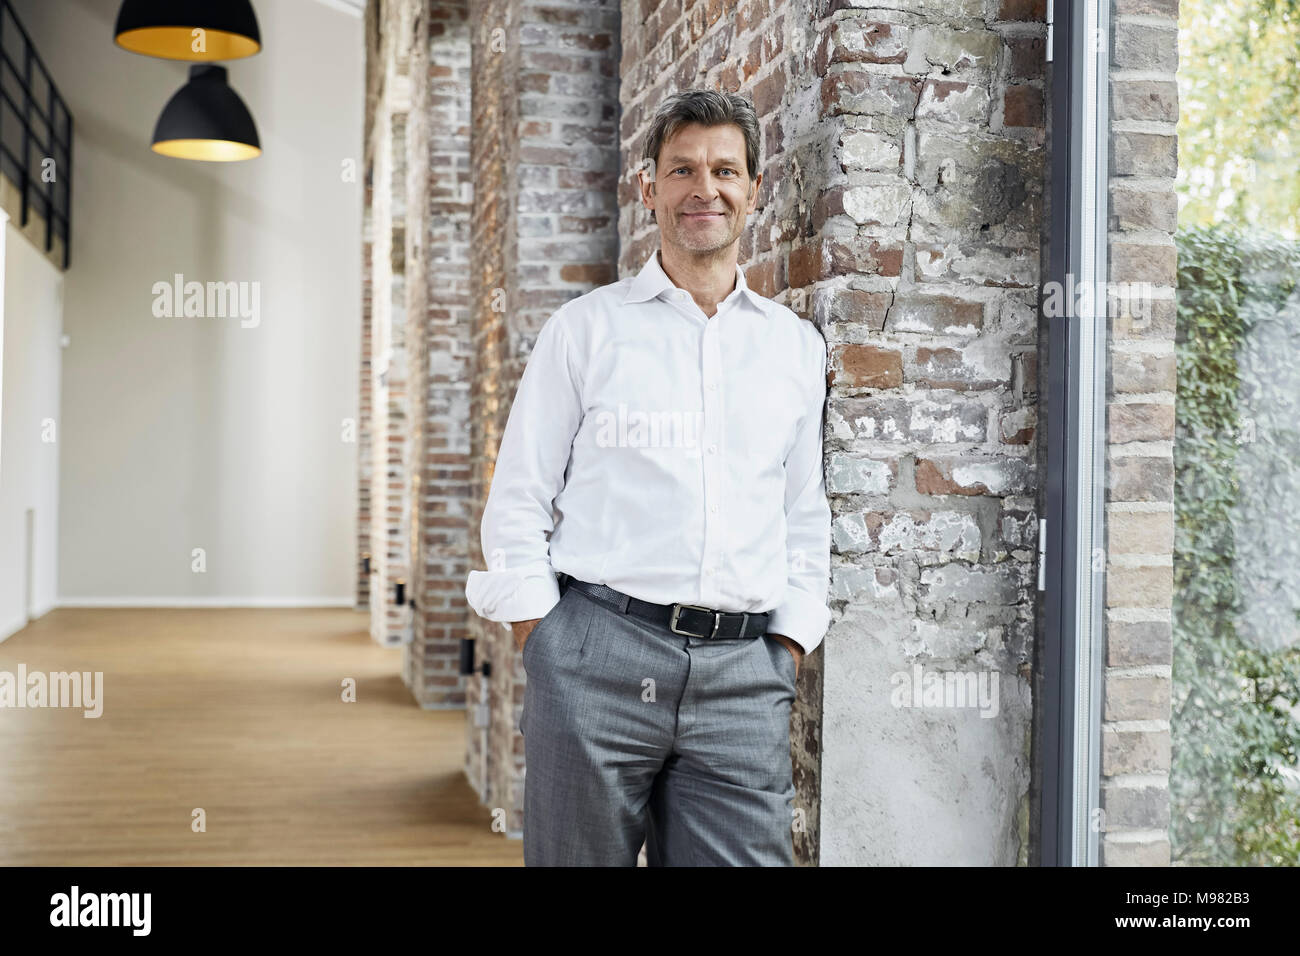 Portrait of smiling businessman leaning against brick wall in modern office - Stock Image